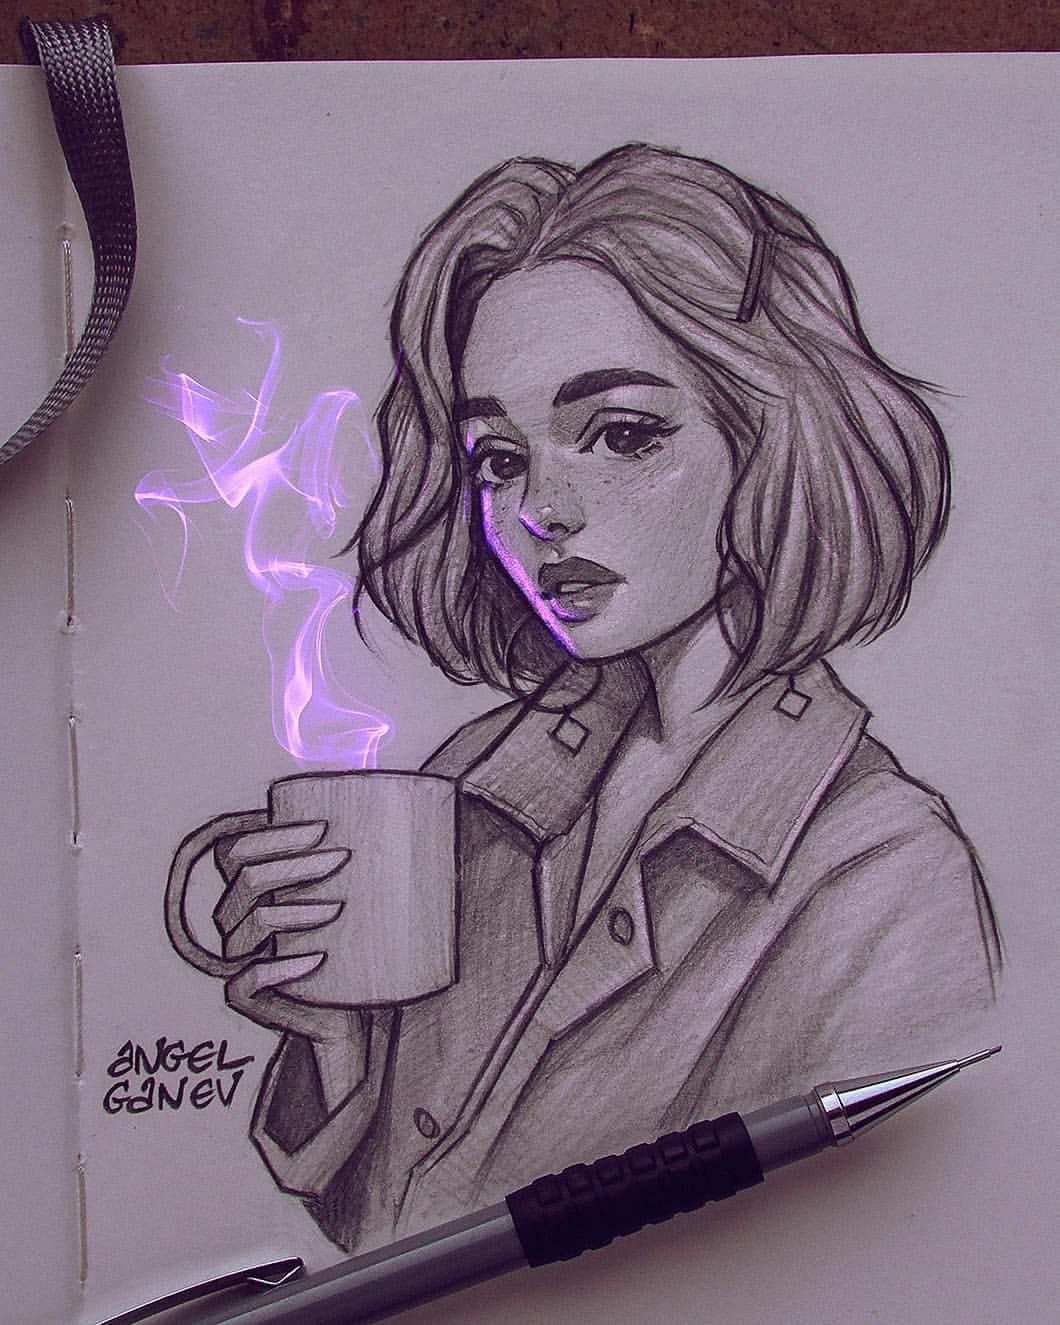 43 8 K Mentions J Aime 866 Commentaires Angel Ganev Angelganev Sur Instagram Bright Pu Art Sketches Art Drawings Sketches Art Drawings Sketches Simple